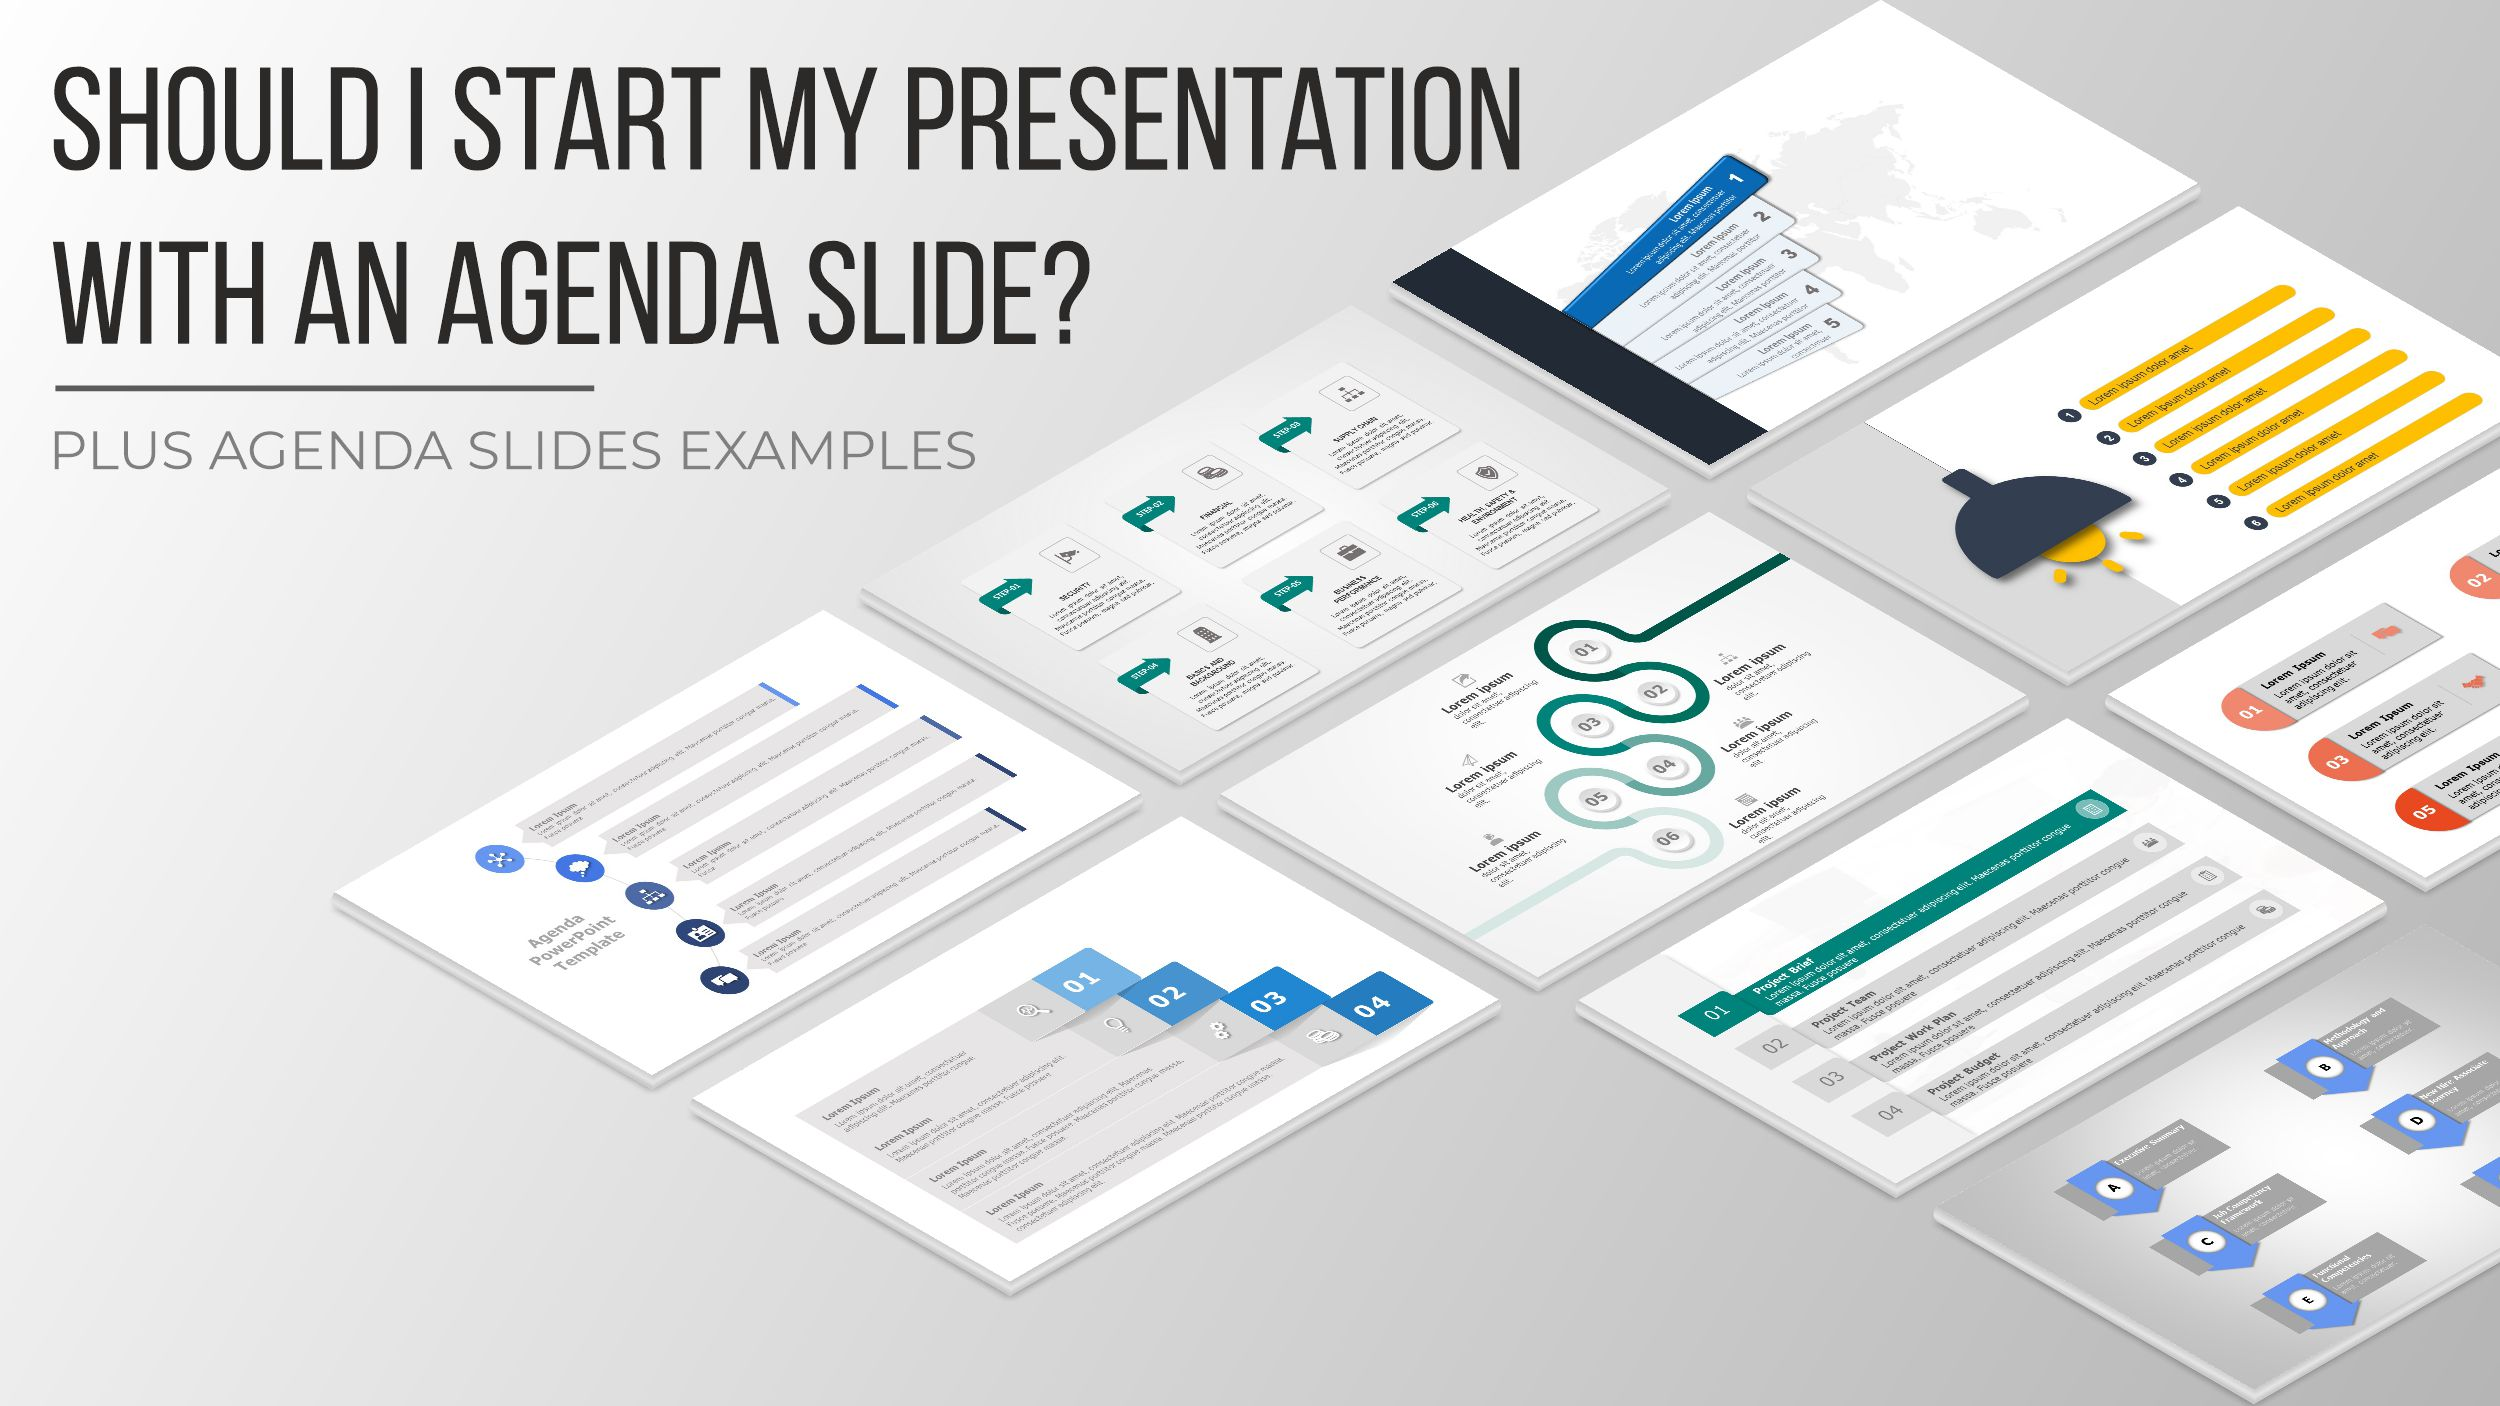 Should I start my presentation with an agenda slide? Plus agenda slides examples